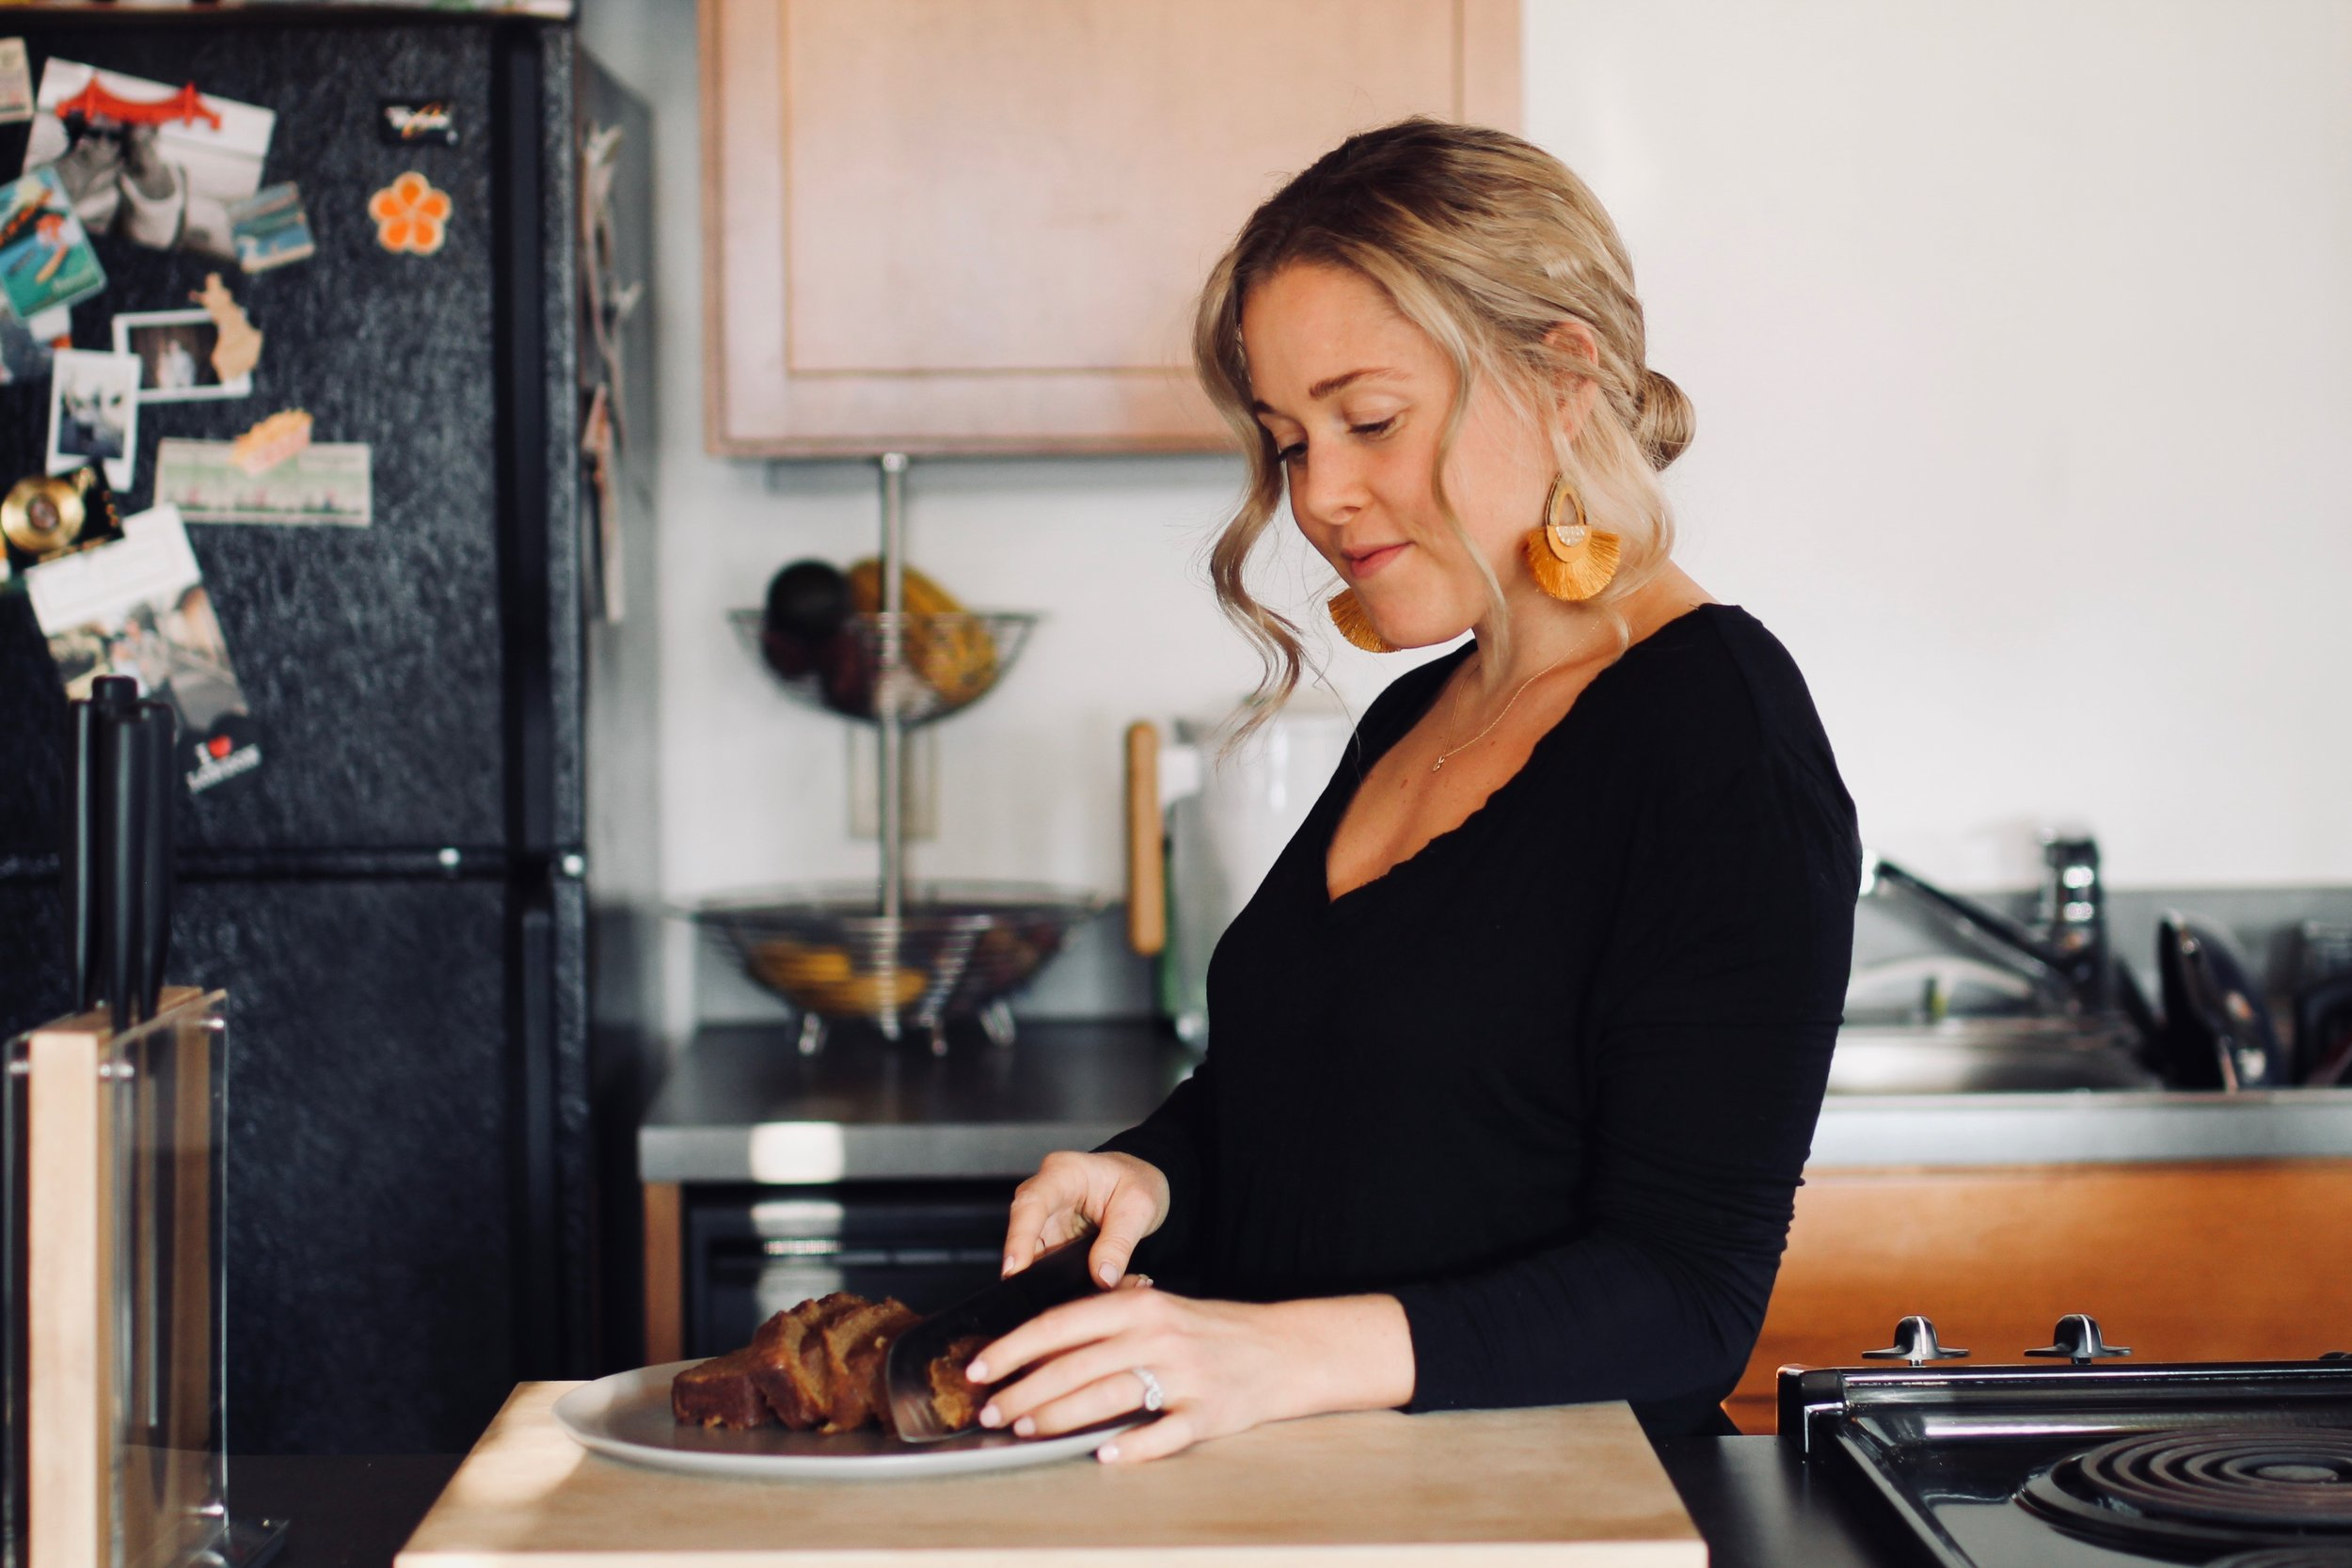 Hi, I'm Edie. - I'm a certified Integrative Nutrition Health Coach, blogger, and freelance writer. I believe in practical, sustainable wellness and the importance of living with joy and purpose.This corner of the web doubles as my creative outlet and side hustle — a place to share simple recipes, travel excerpts, and other little narratives.